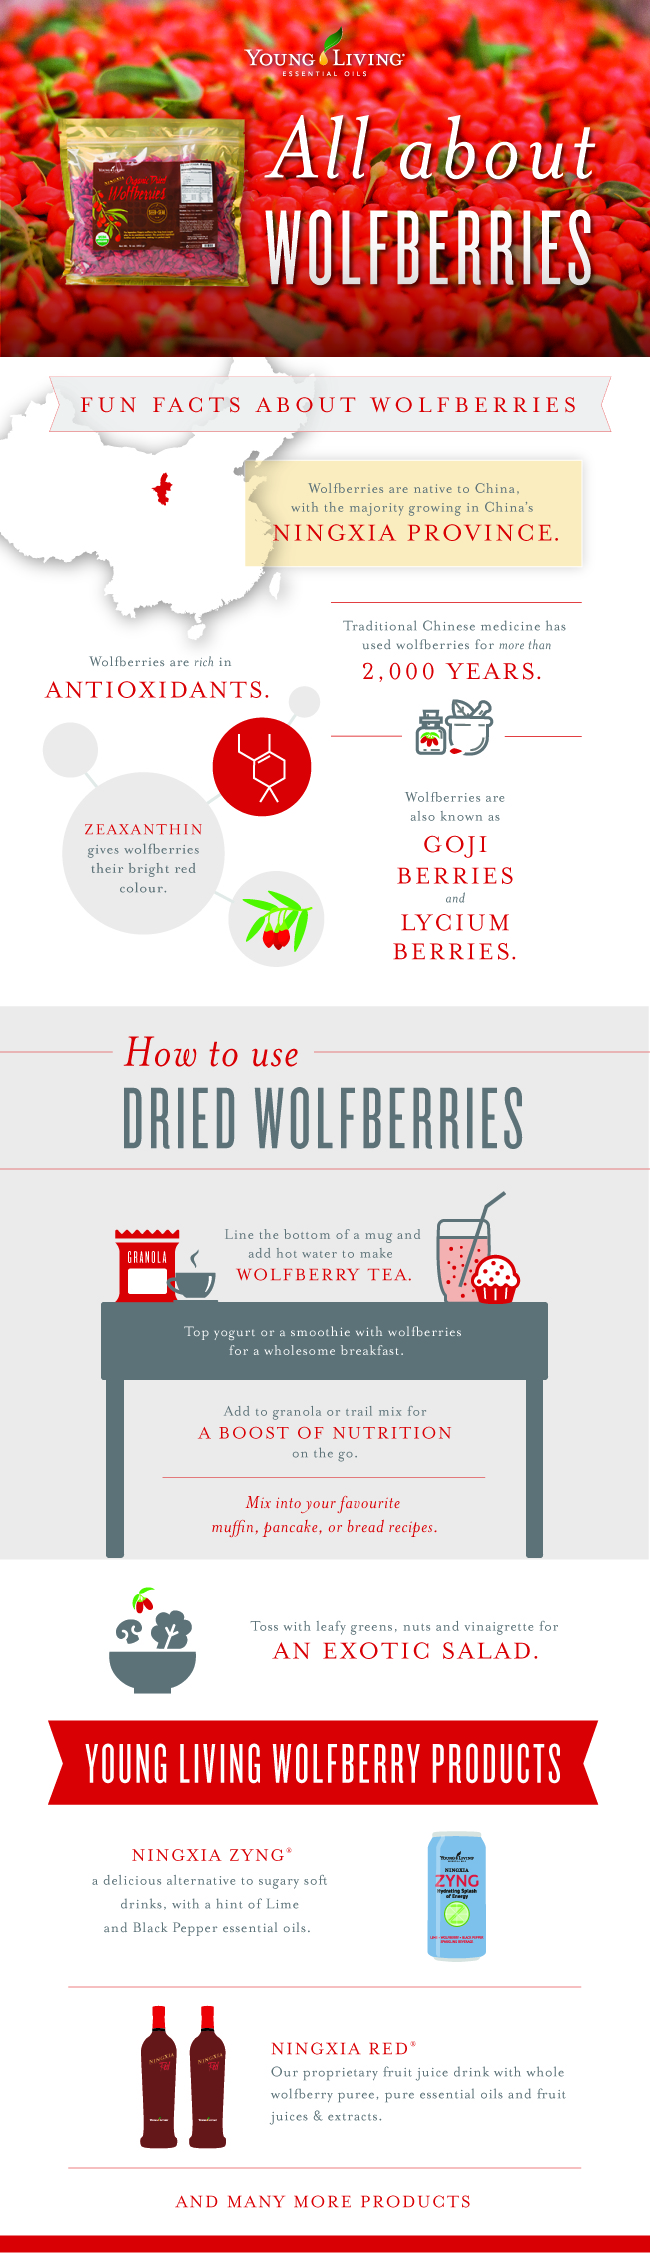 How to use Goji Berries / wolfberries infographic